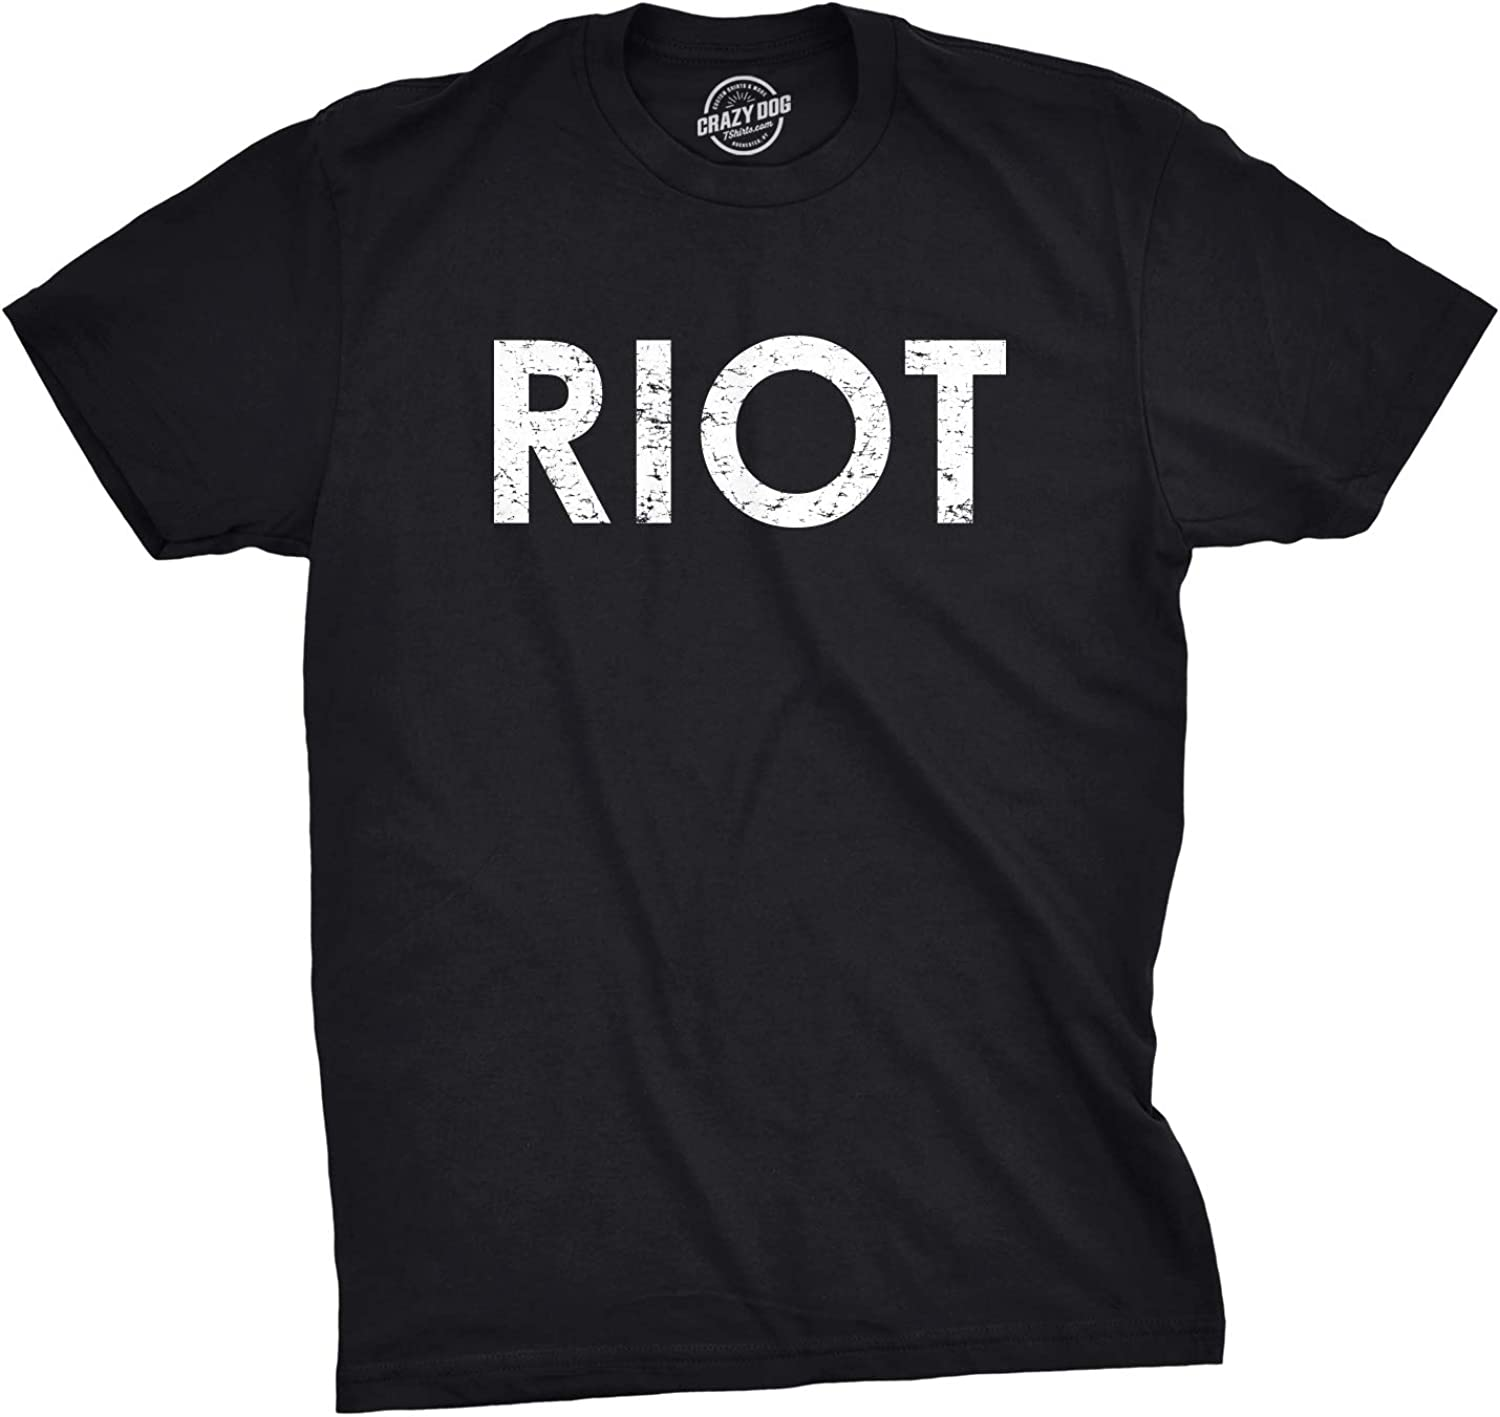 Riot T Shirt Funny Shirts for Men Political Novelty Sarcastic Adult Tees Humor